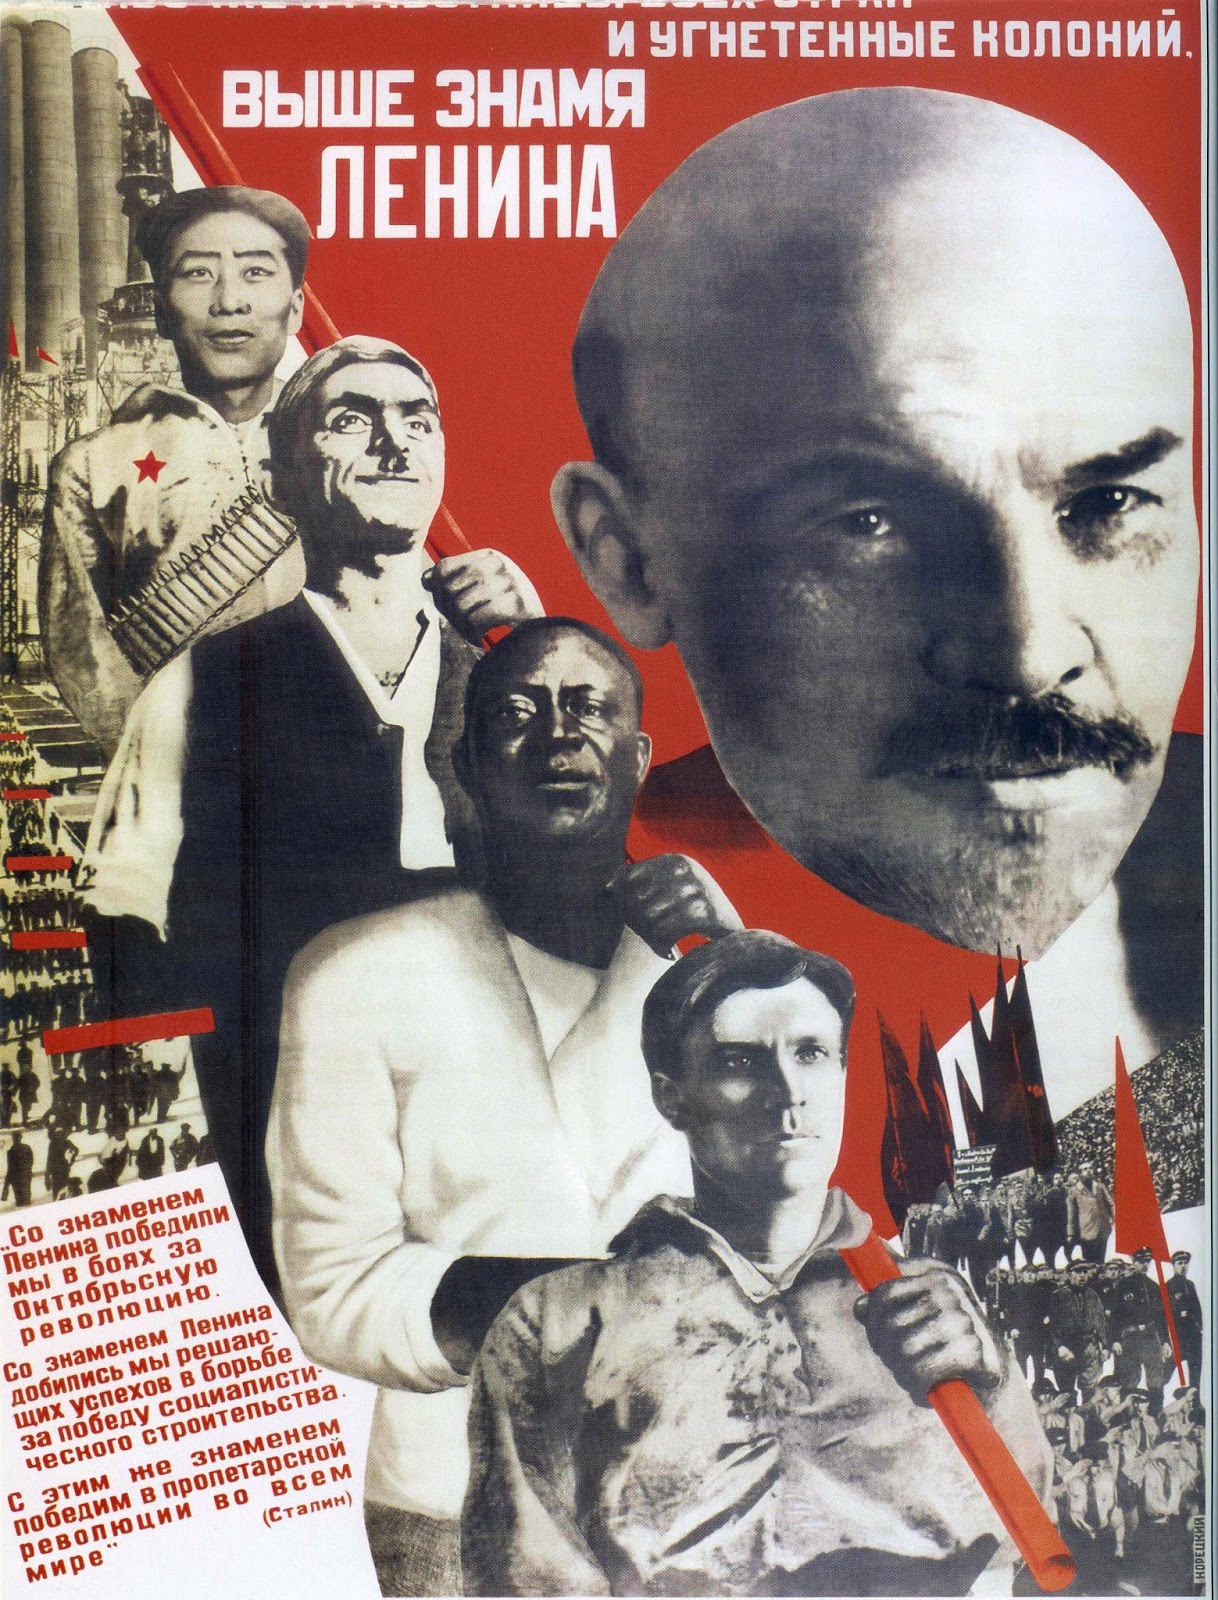 poster, Lenin's mausoleum, Мавзоле́й Ле́нина, lenin's tomb, communism, socialism, russia, ussr, cccp, stalin, moscow, red square, october revolution, body, inside,